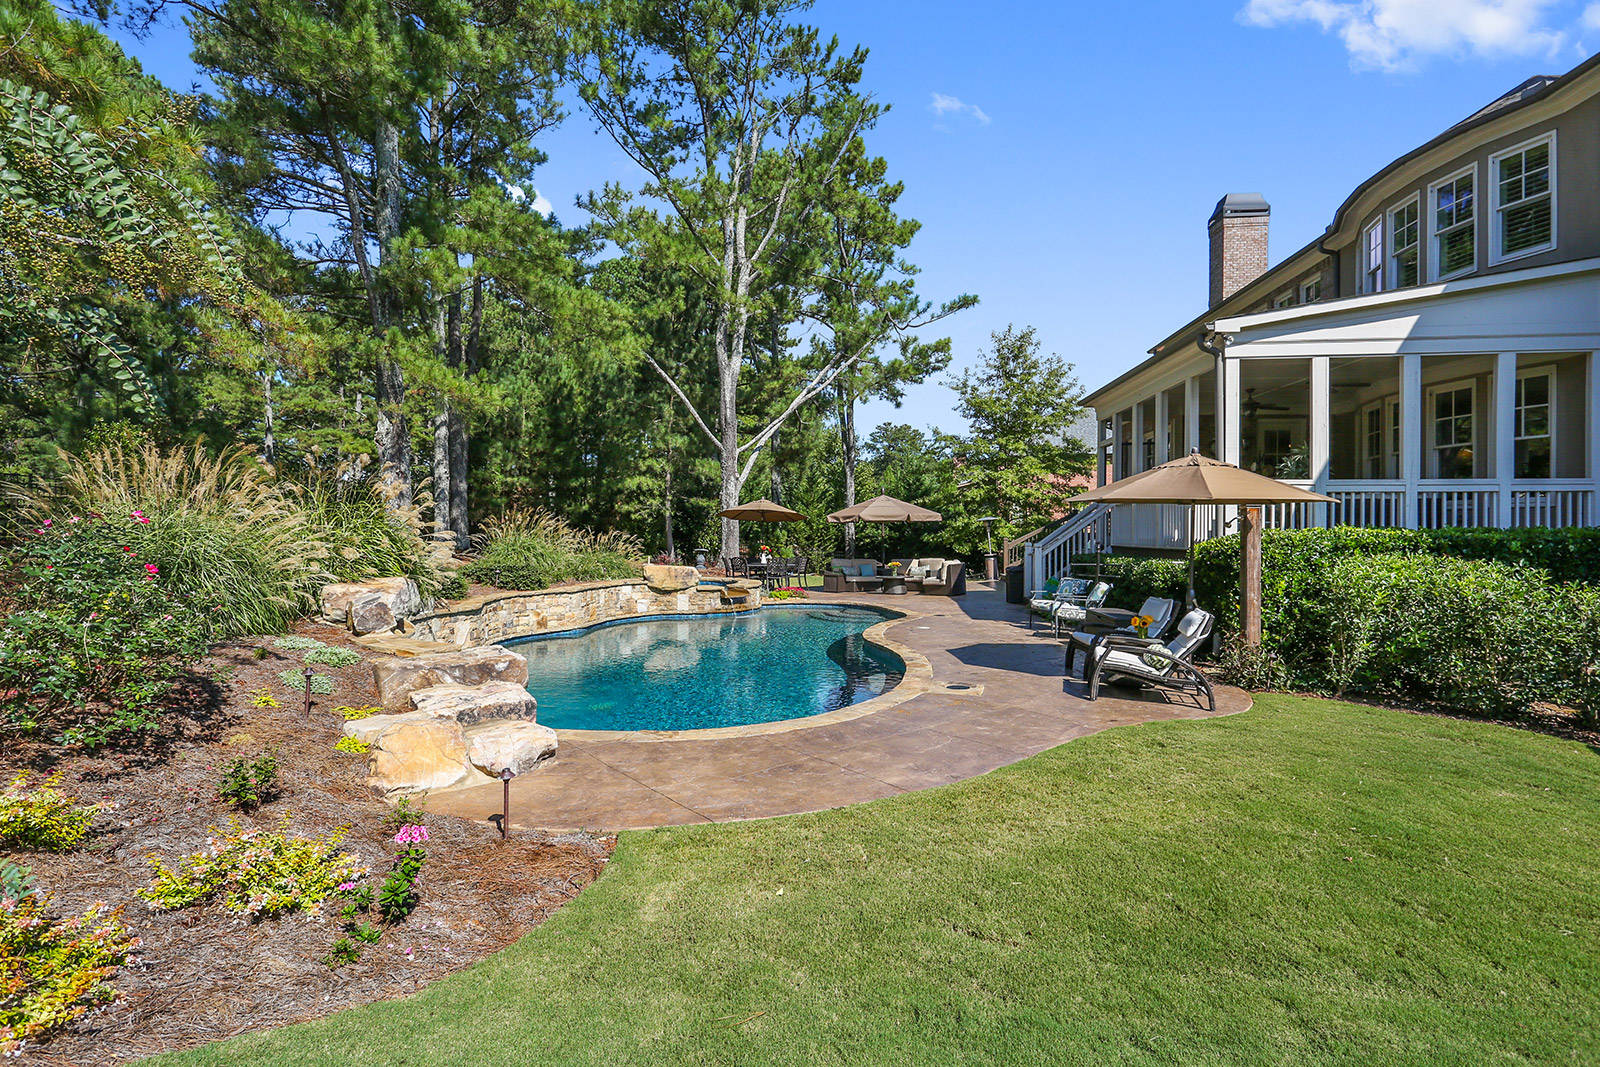 Luxury Home For Sale Roswell Georgia